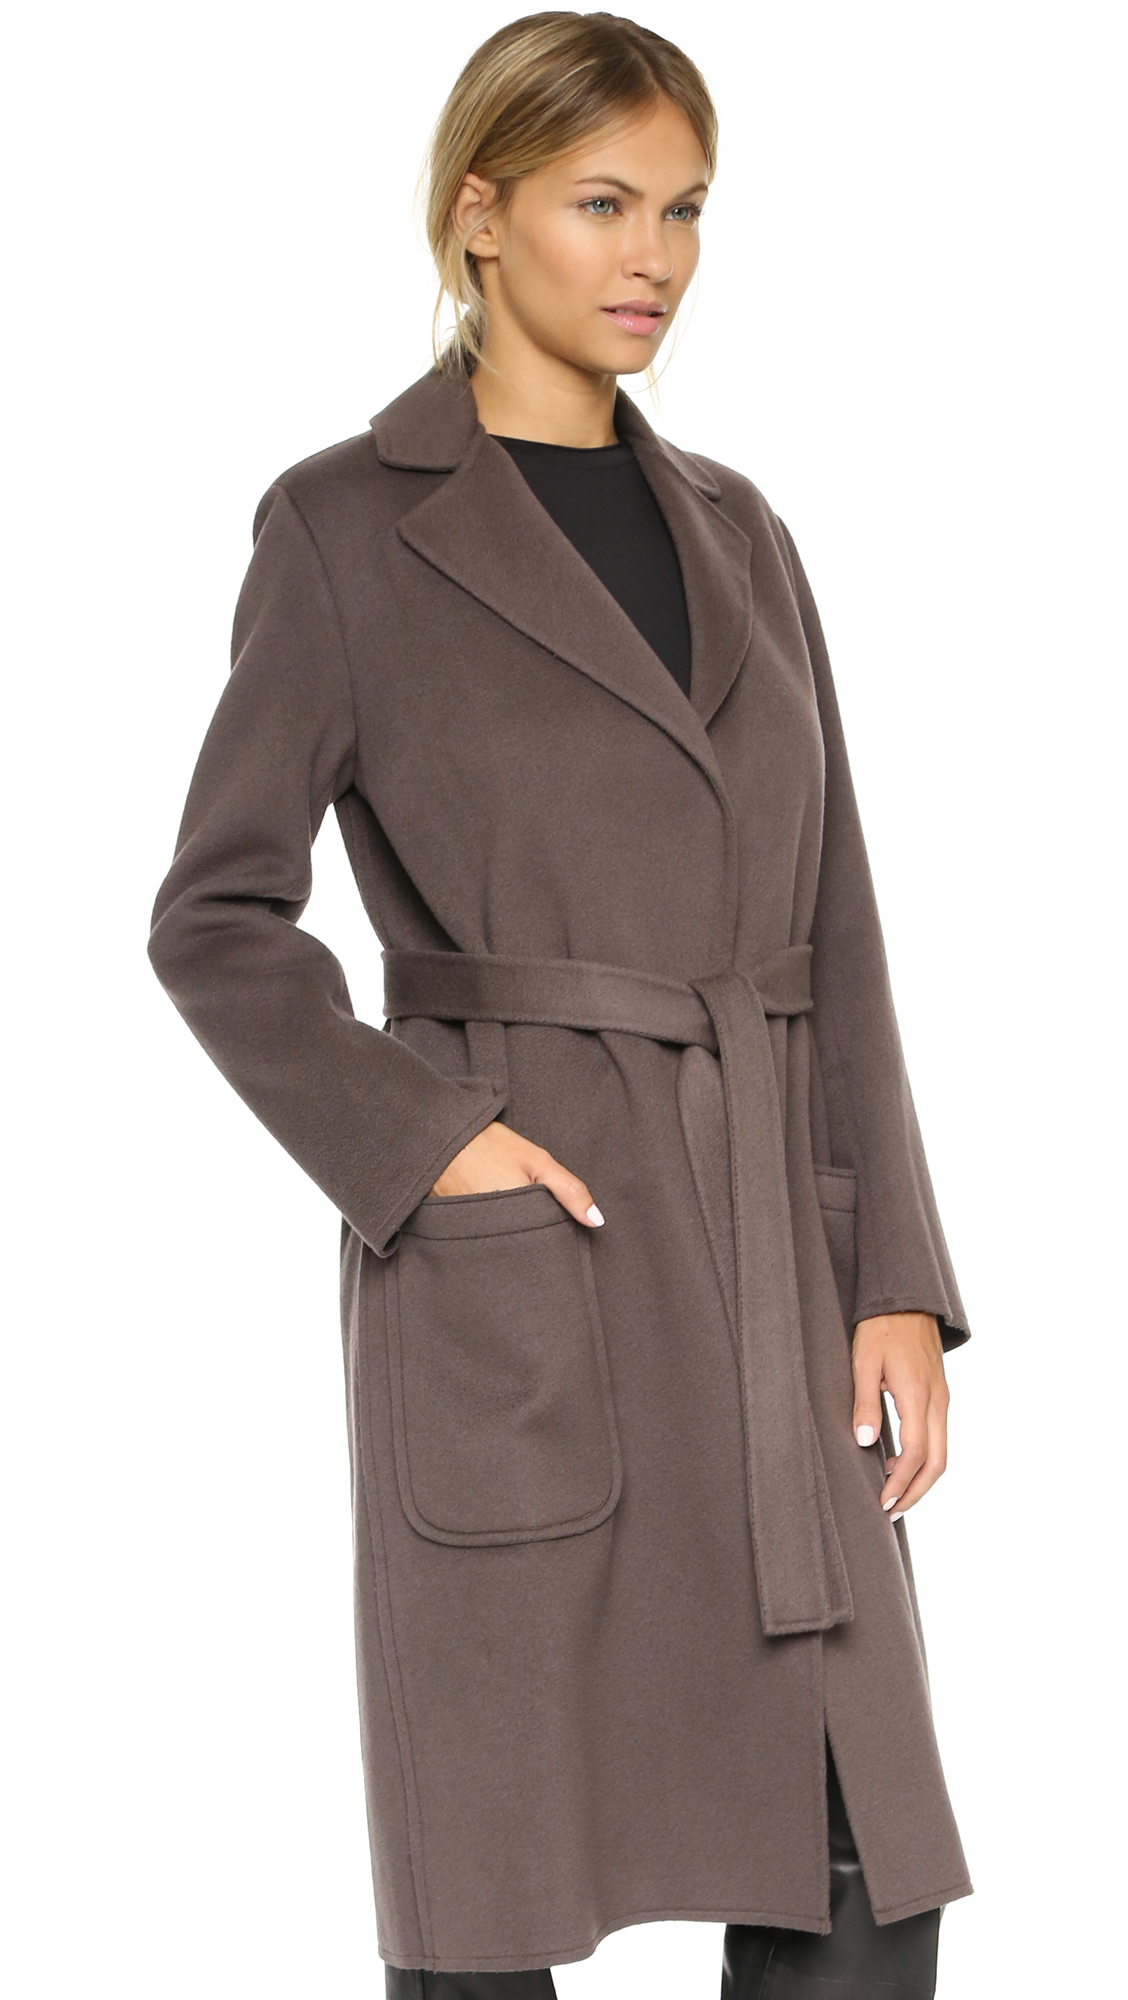 Helmut lang Long Coat - Bark in Brown | Lyst